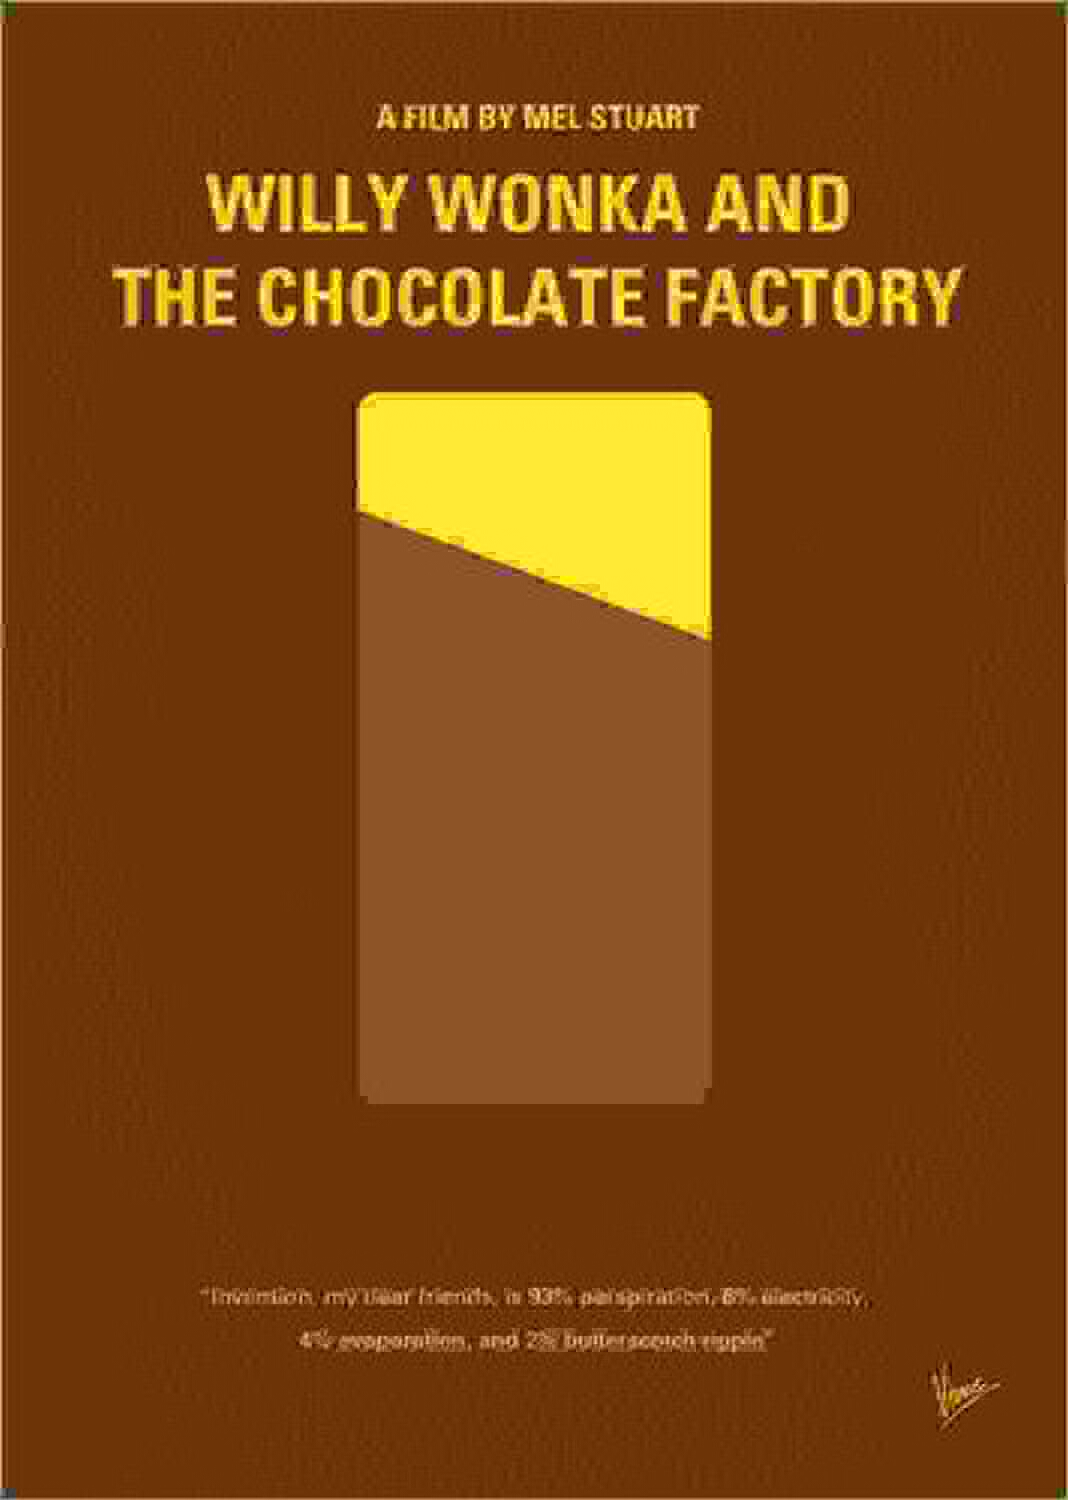 gran venta Cuadro de PVC 60 60 60 x 80 cm  No149 My Willy Wonka and The Chocolate Factory Minimal Movie Poster de chungkong  buena calidad